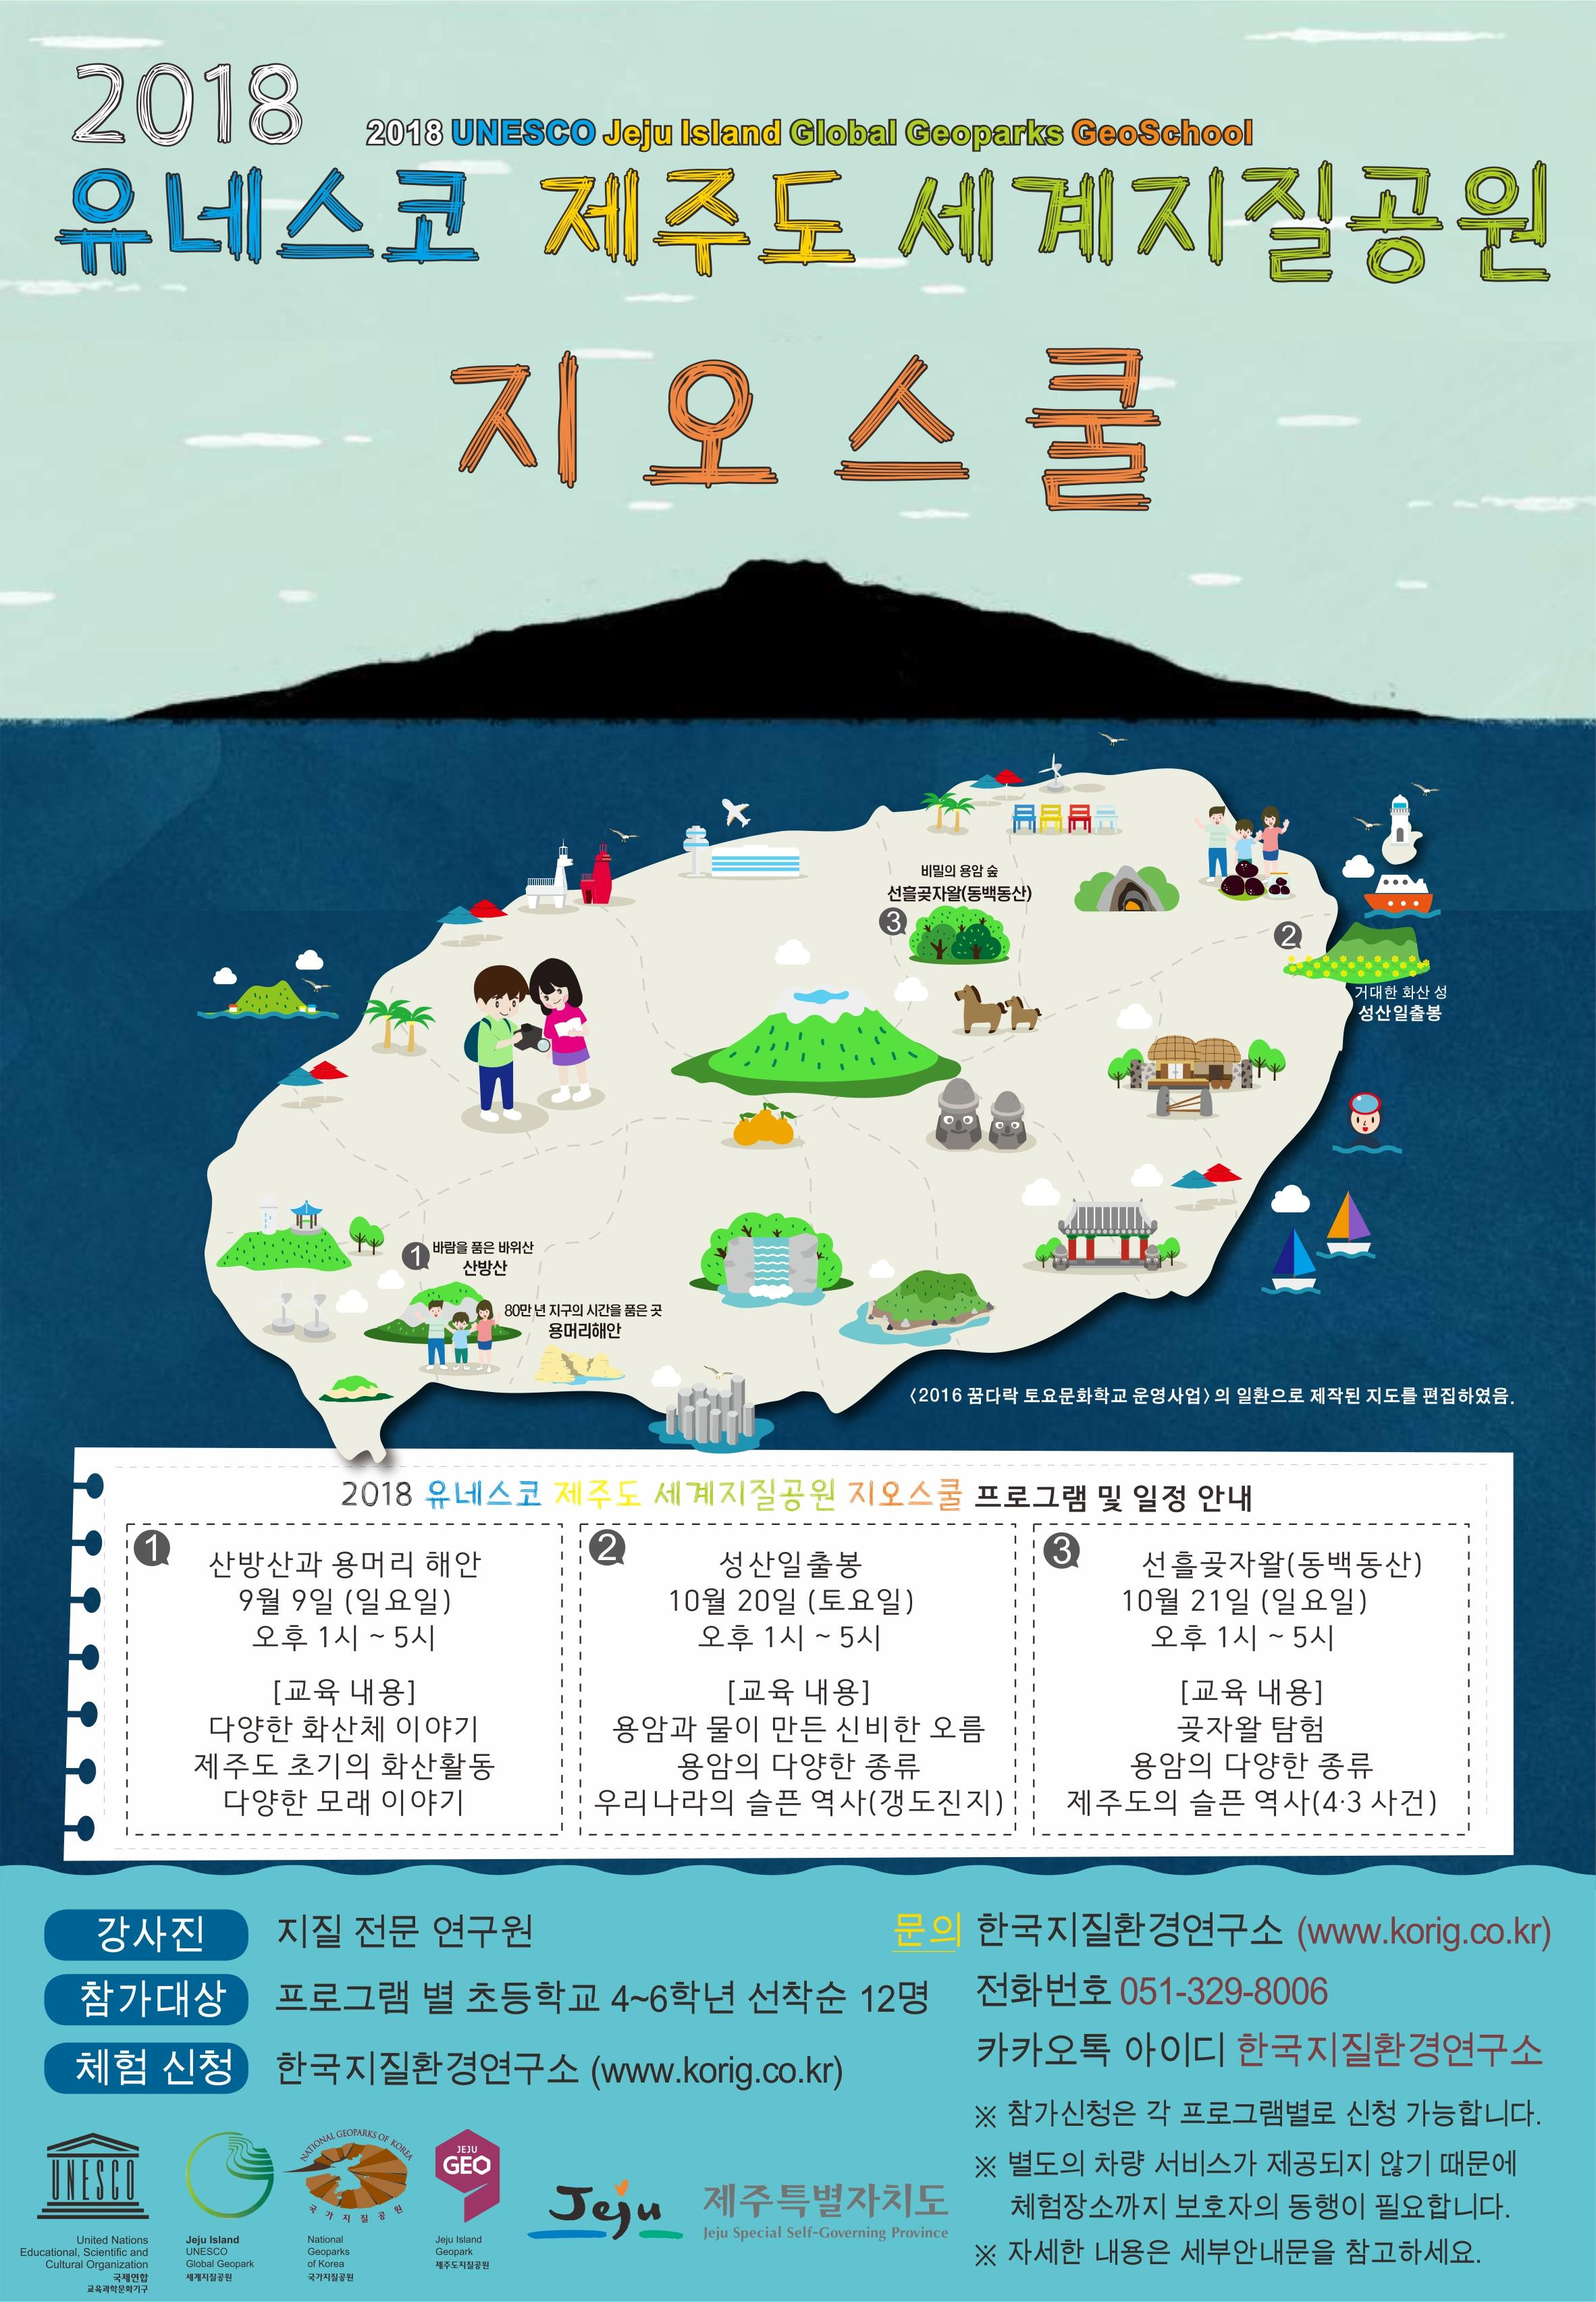 2018년 하반기 지오스쿨(GeoSchool) 참가자 모집 (The Announcement of Participant Recruitments for 2018 GeoSchool of the second half of the year).